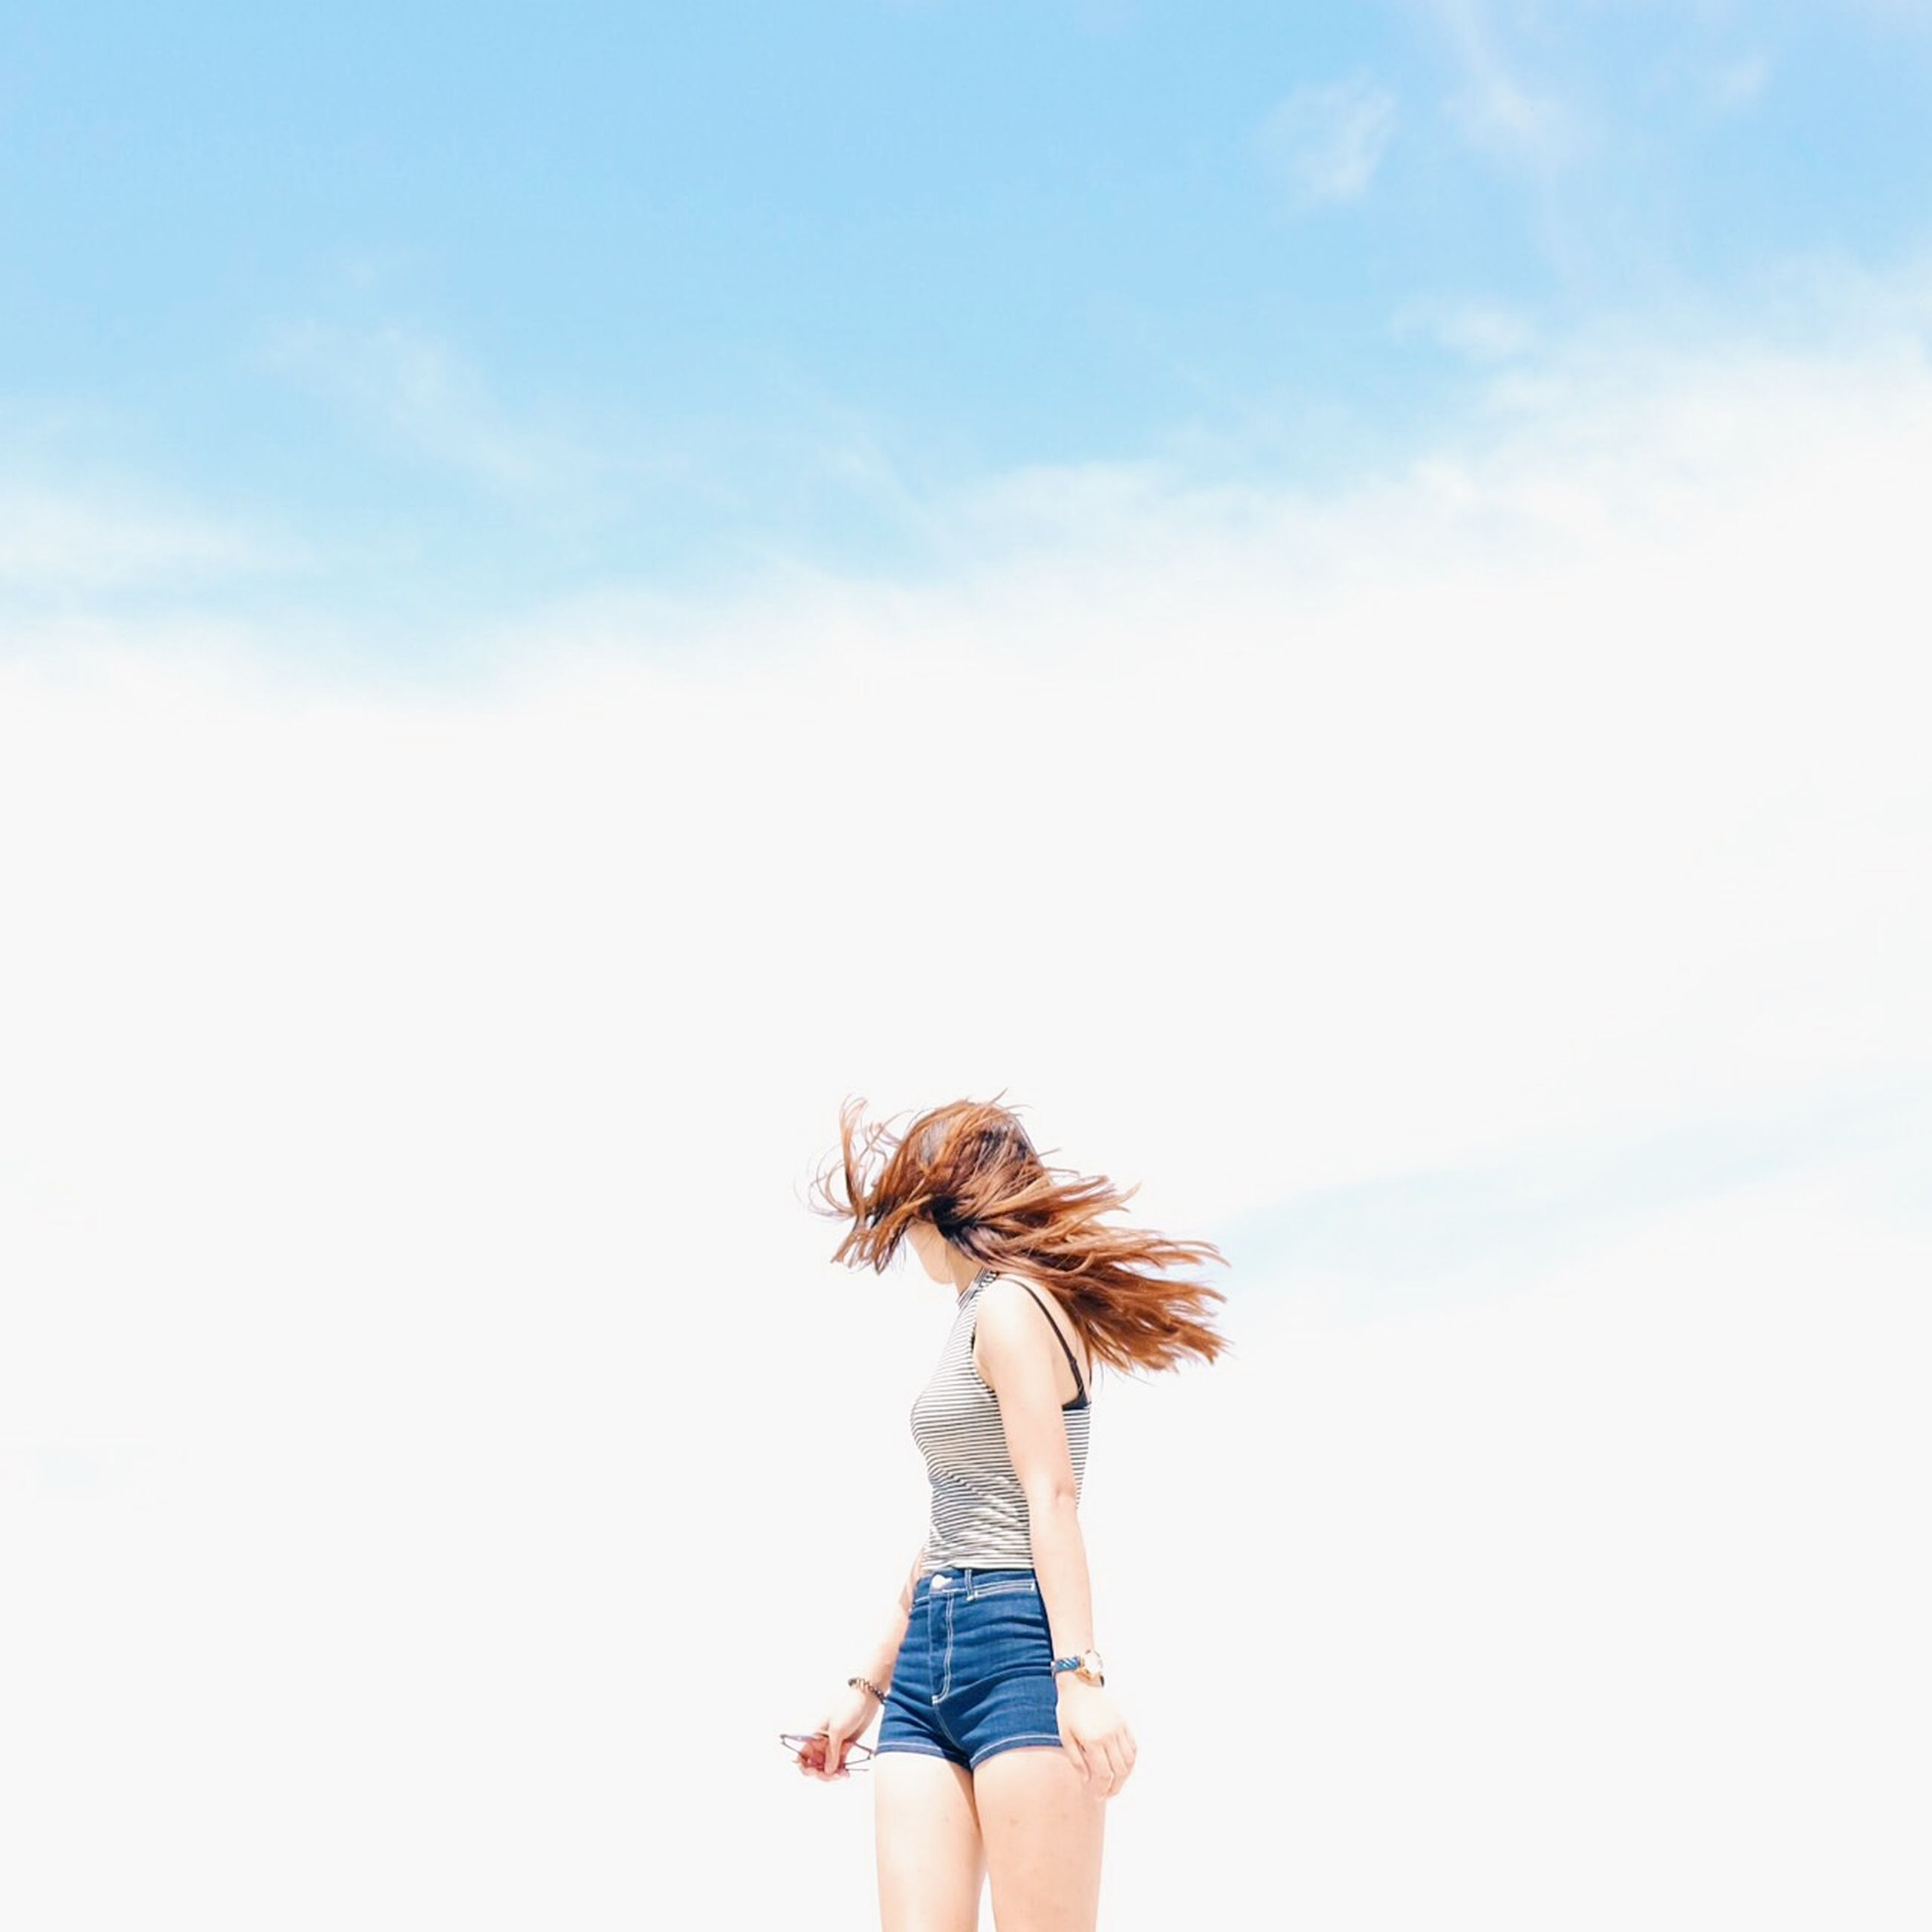 lifestyles, sky, leisure activity, person, standing, holding, rear view, copy space, nature, long hair, low angle view, dandelion, three quarter length, waist up, flower, outdoors